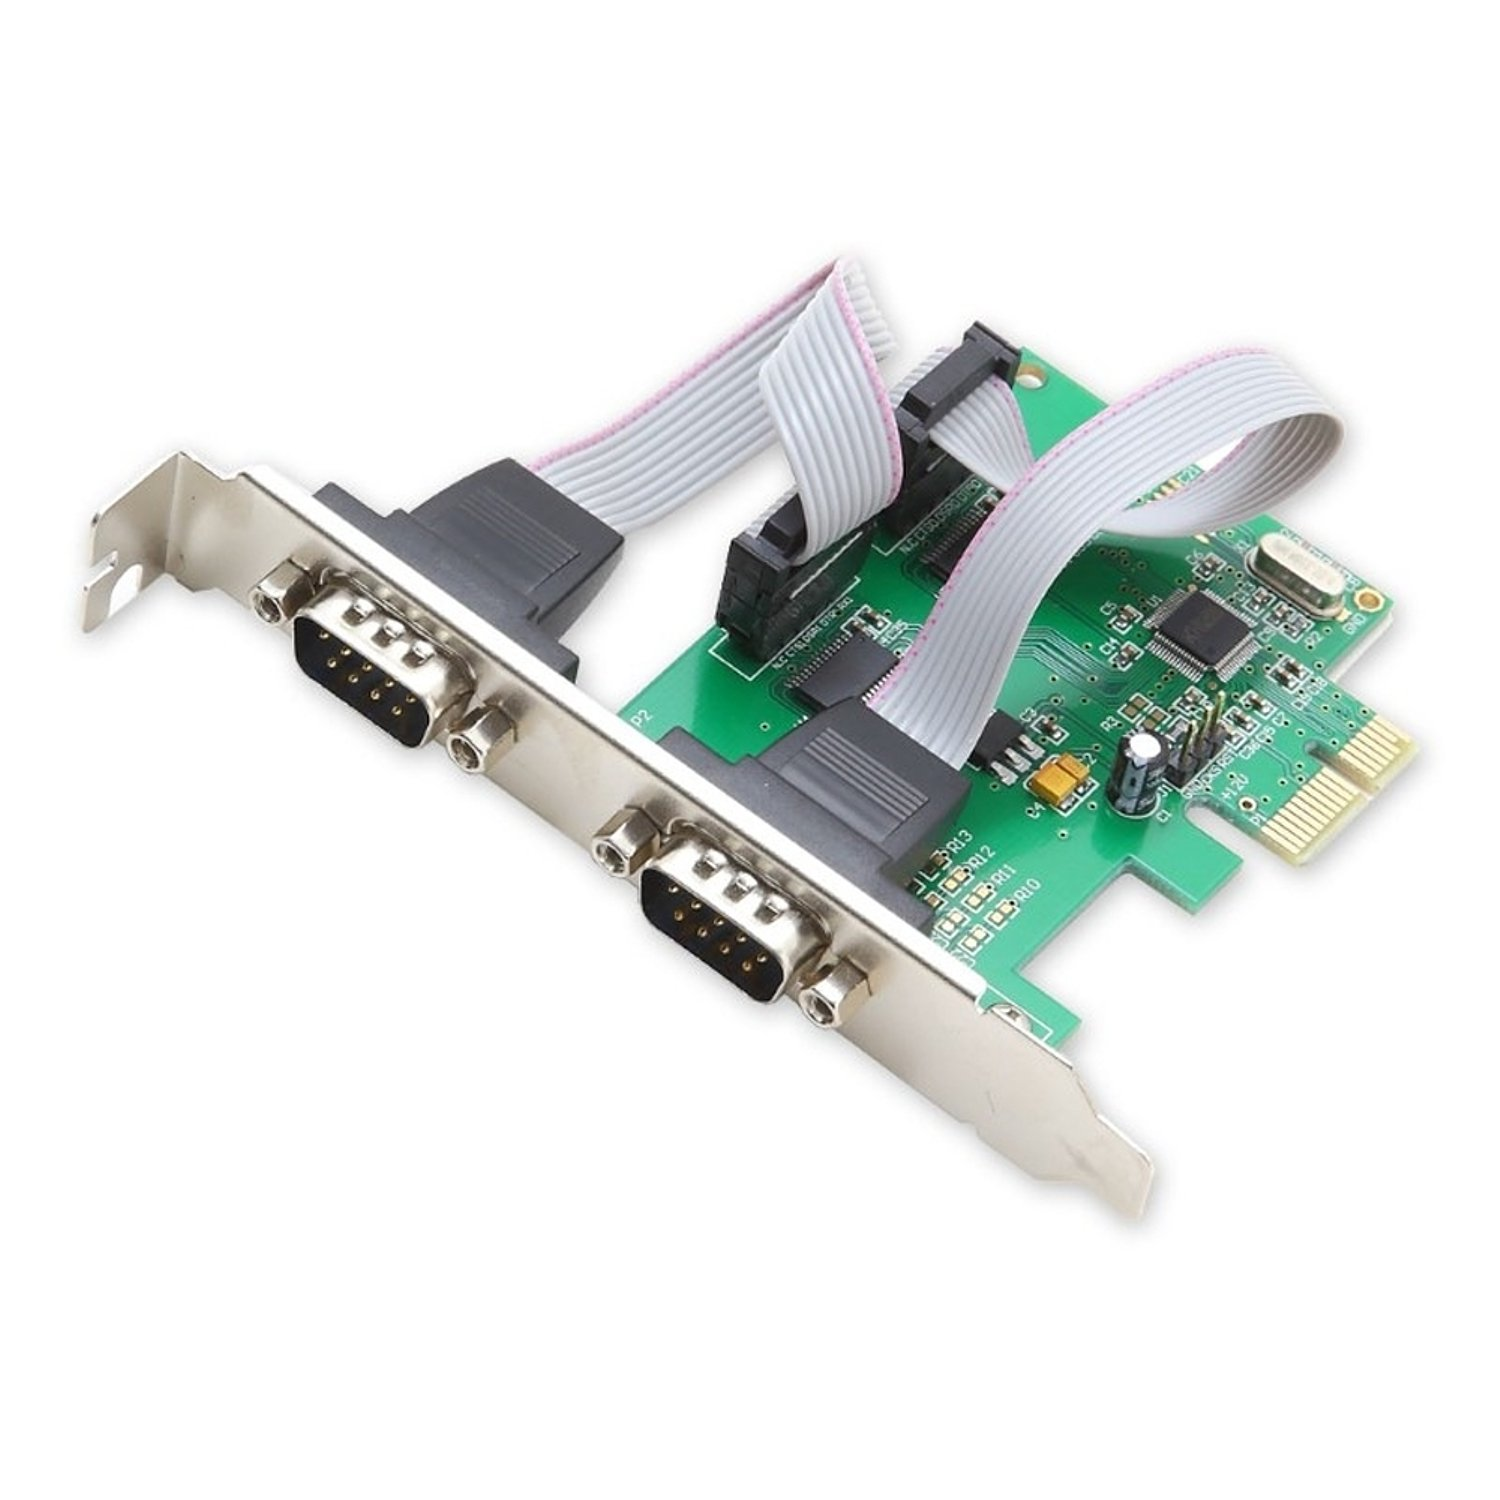 SYBA SI-PEX15037 2 Serial Ports PCI-e Controller Card with Low Profile Bracket